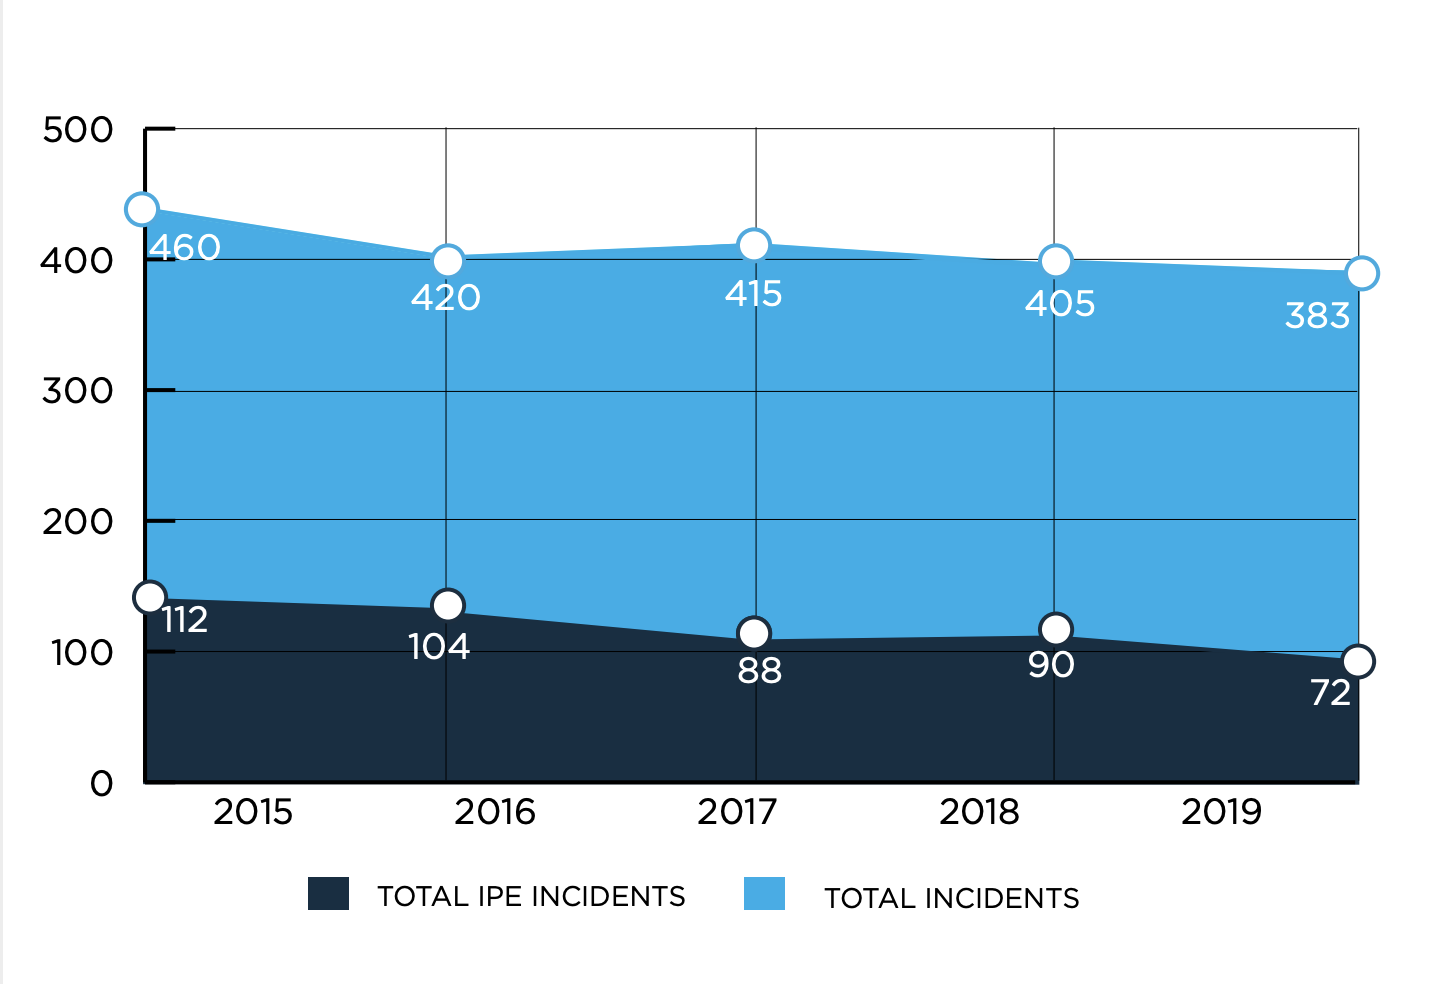 Graph of Total Incidents and Total IPE Incidents